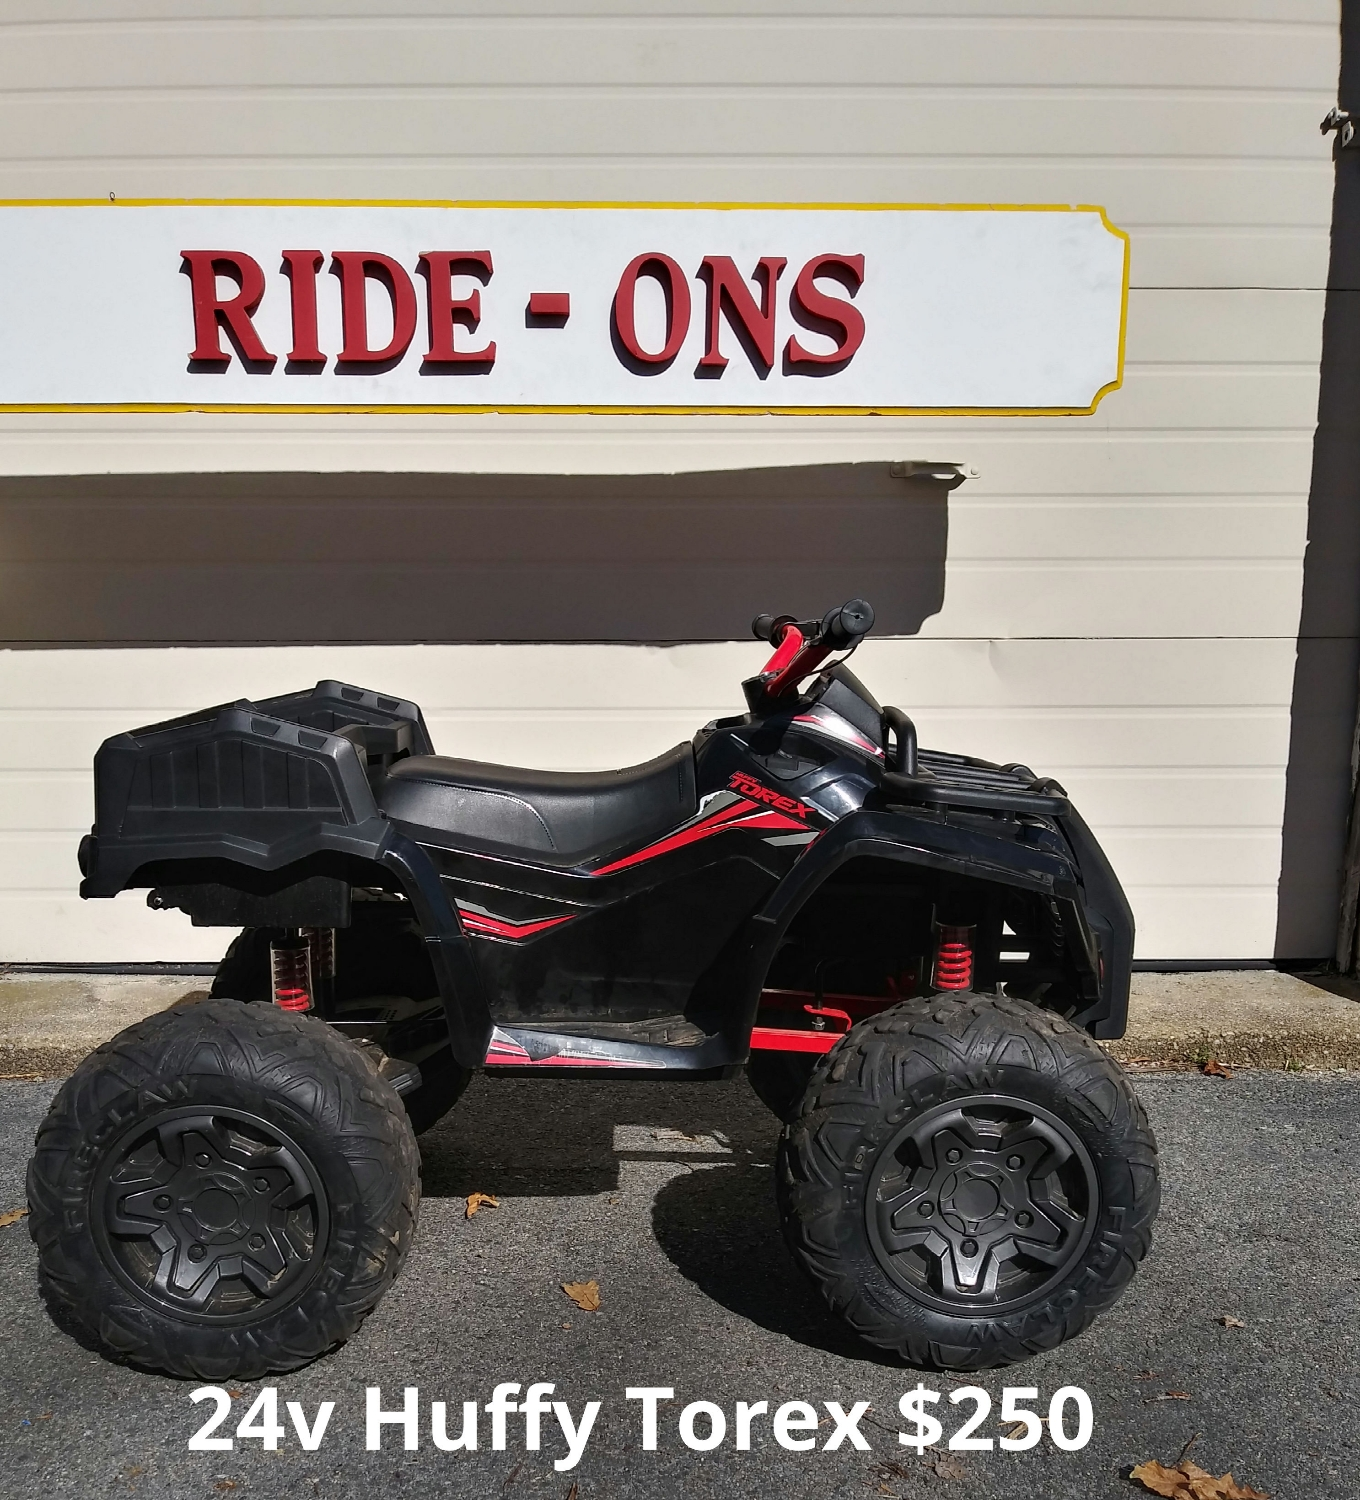 24v Huffy Torex ATV